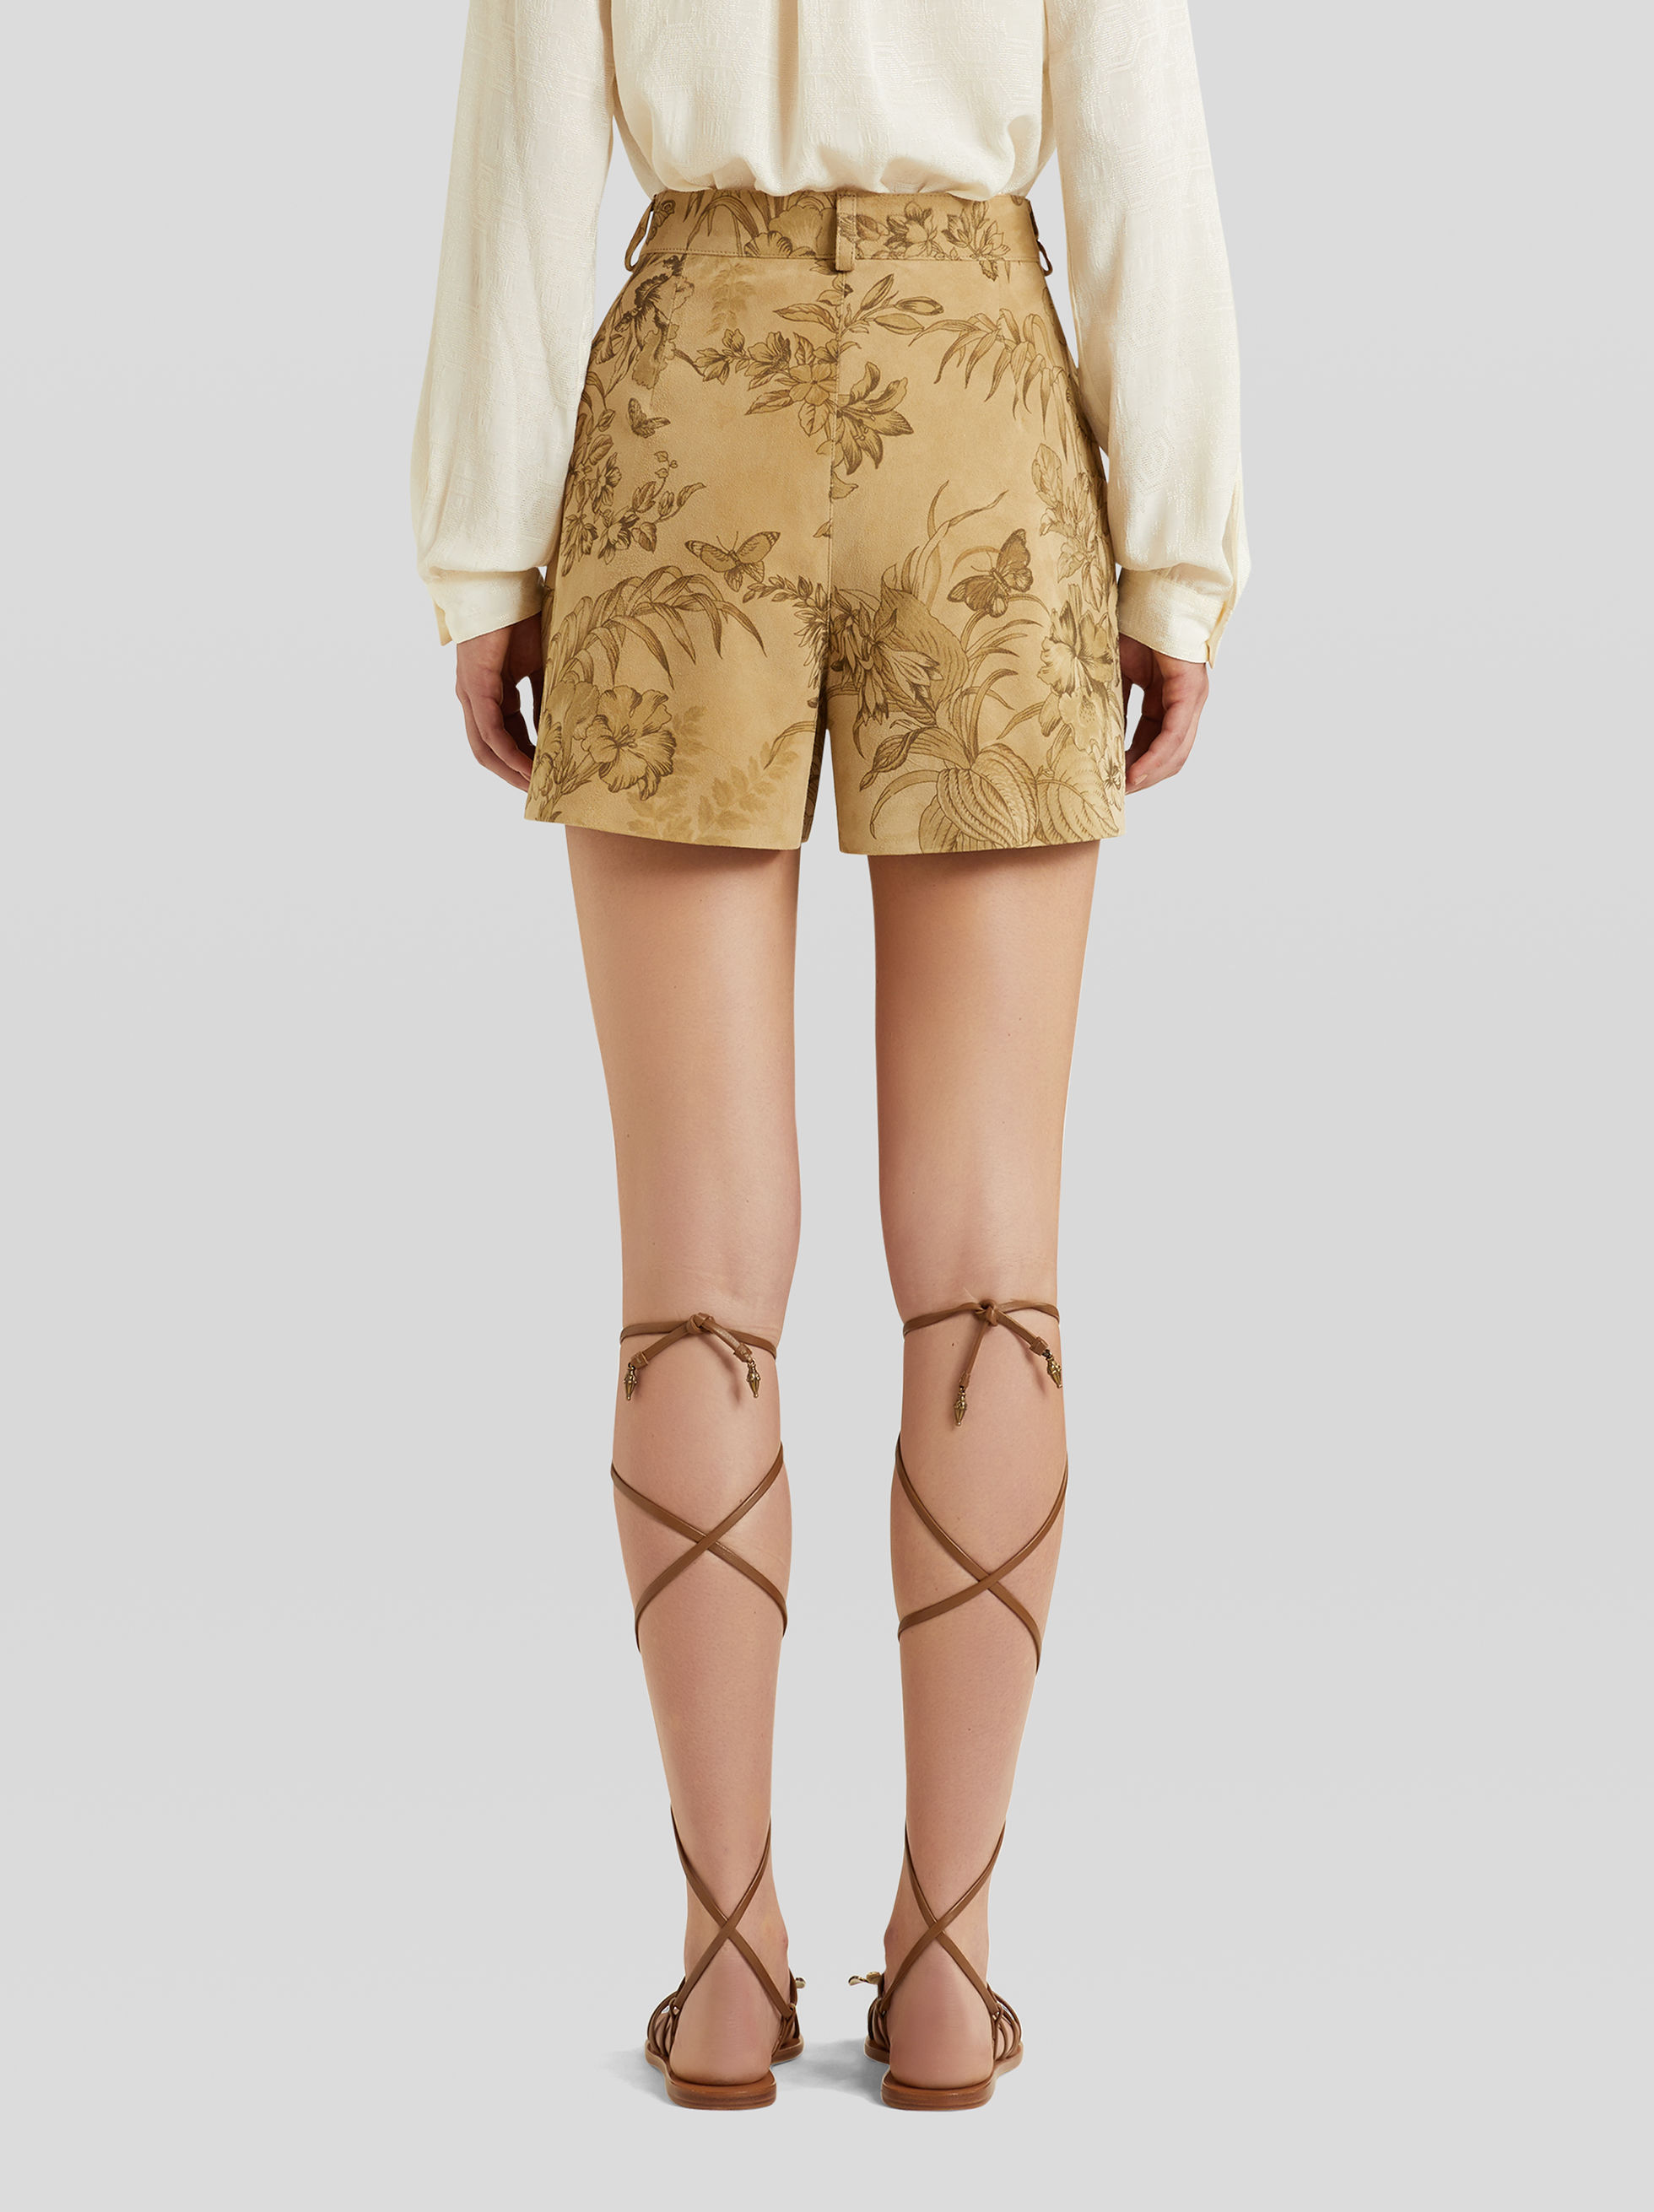 LEAFY DESIGN LEATHER SHORTS